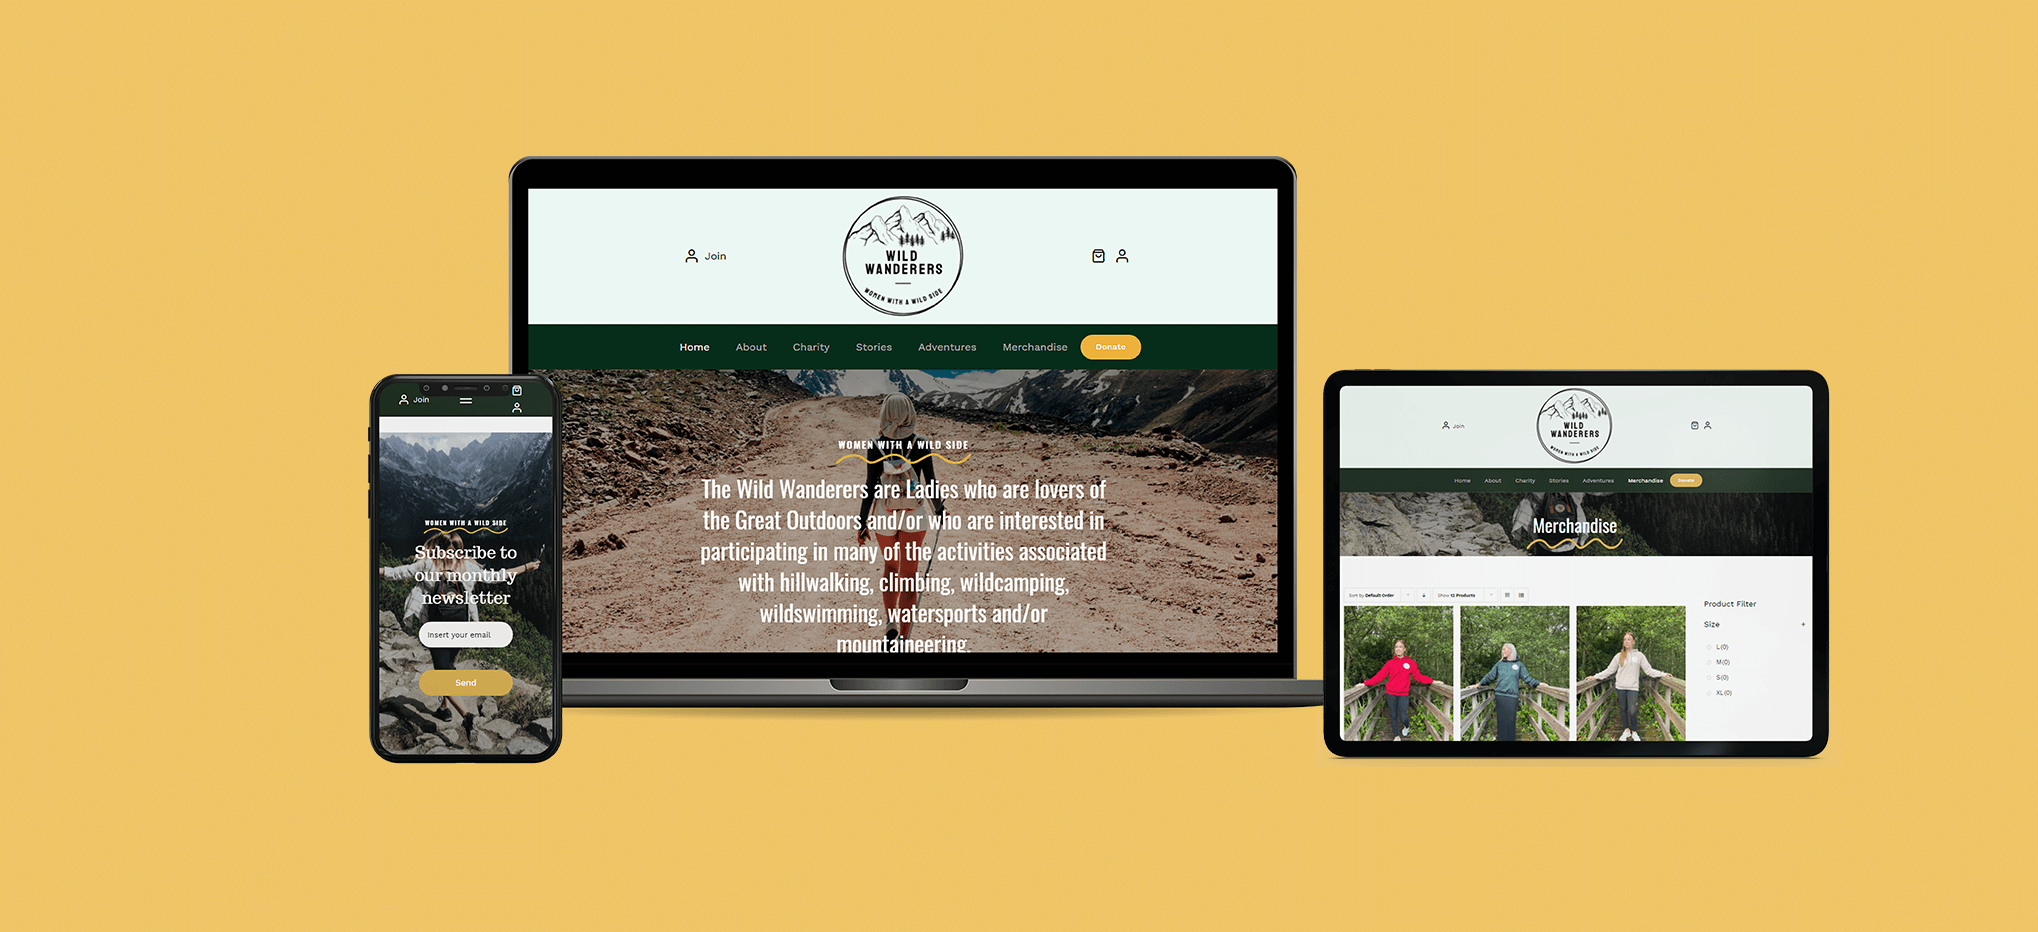 Case Study - Wild Wanderers - Feature